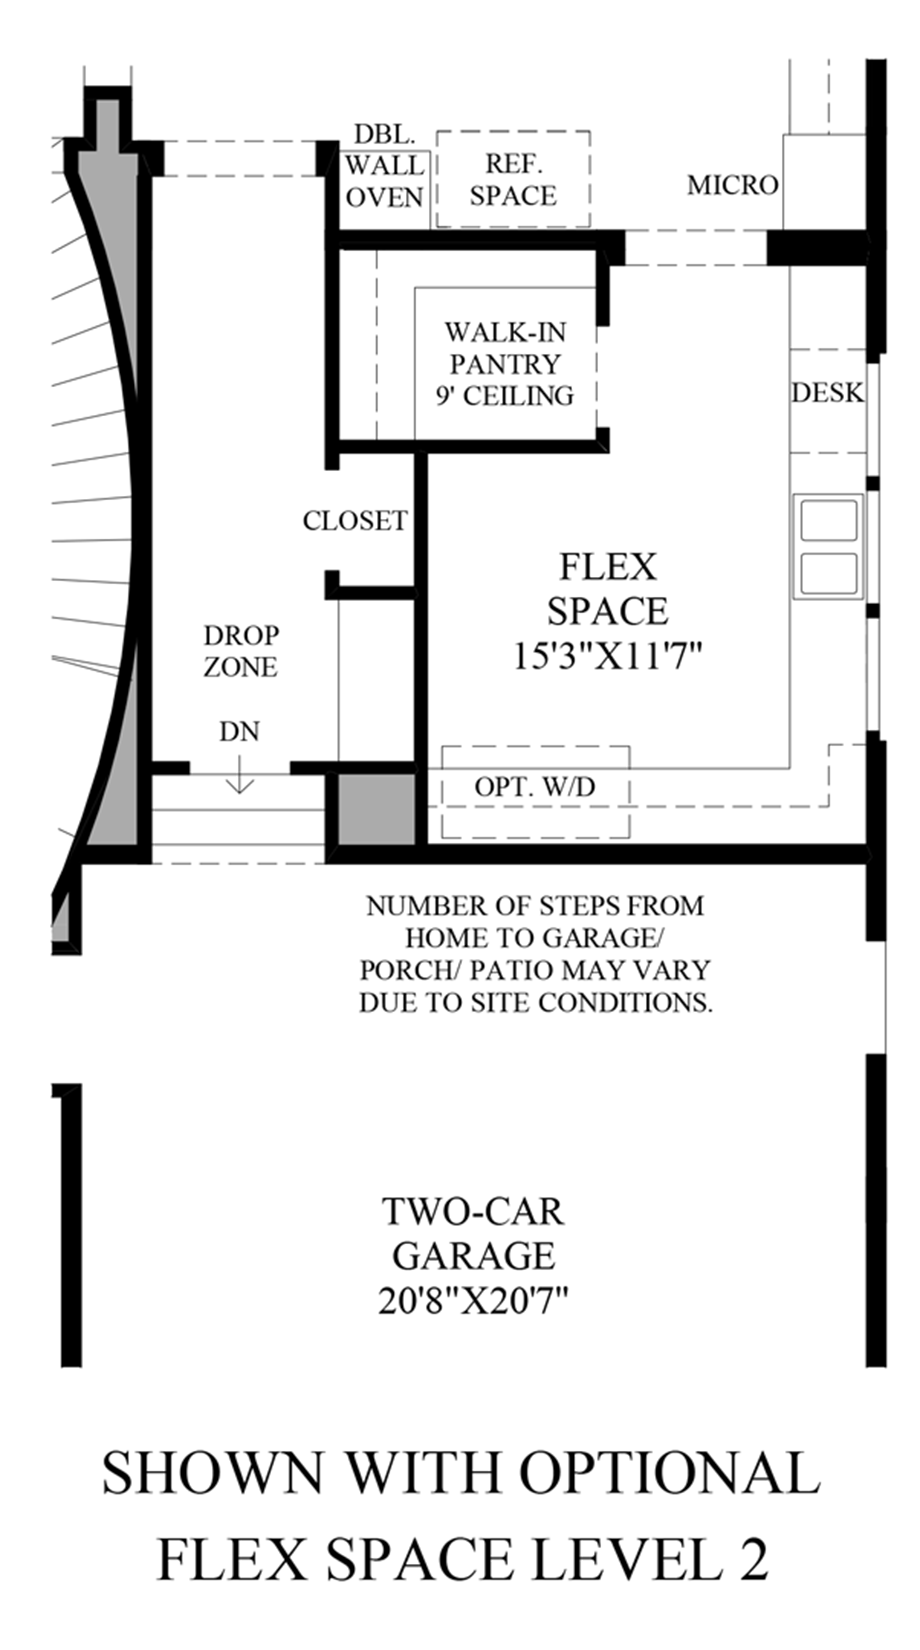 Optional Flex Space Floor Plan